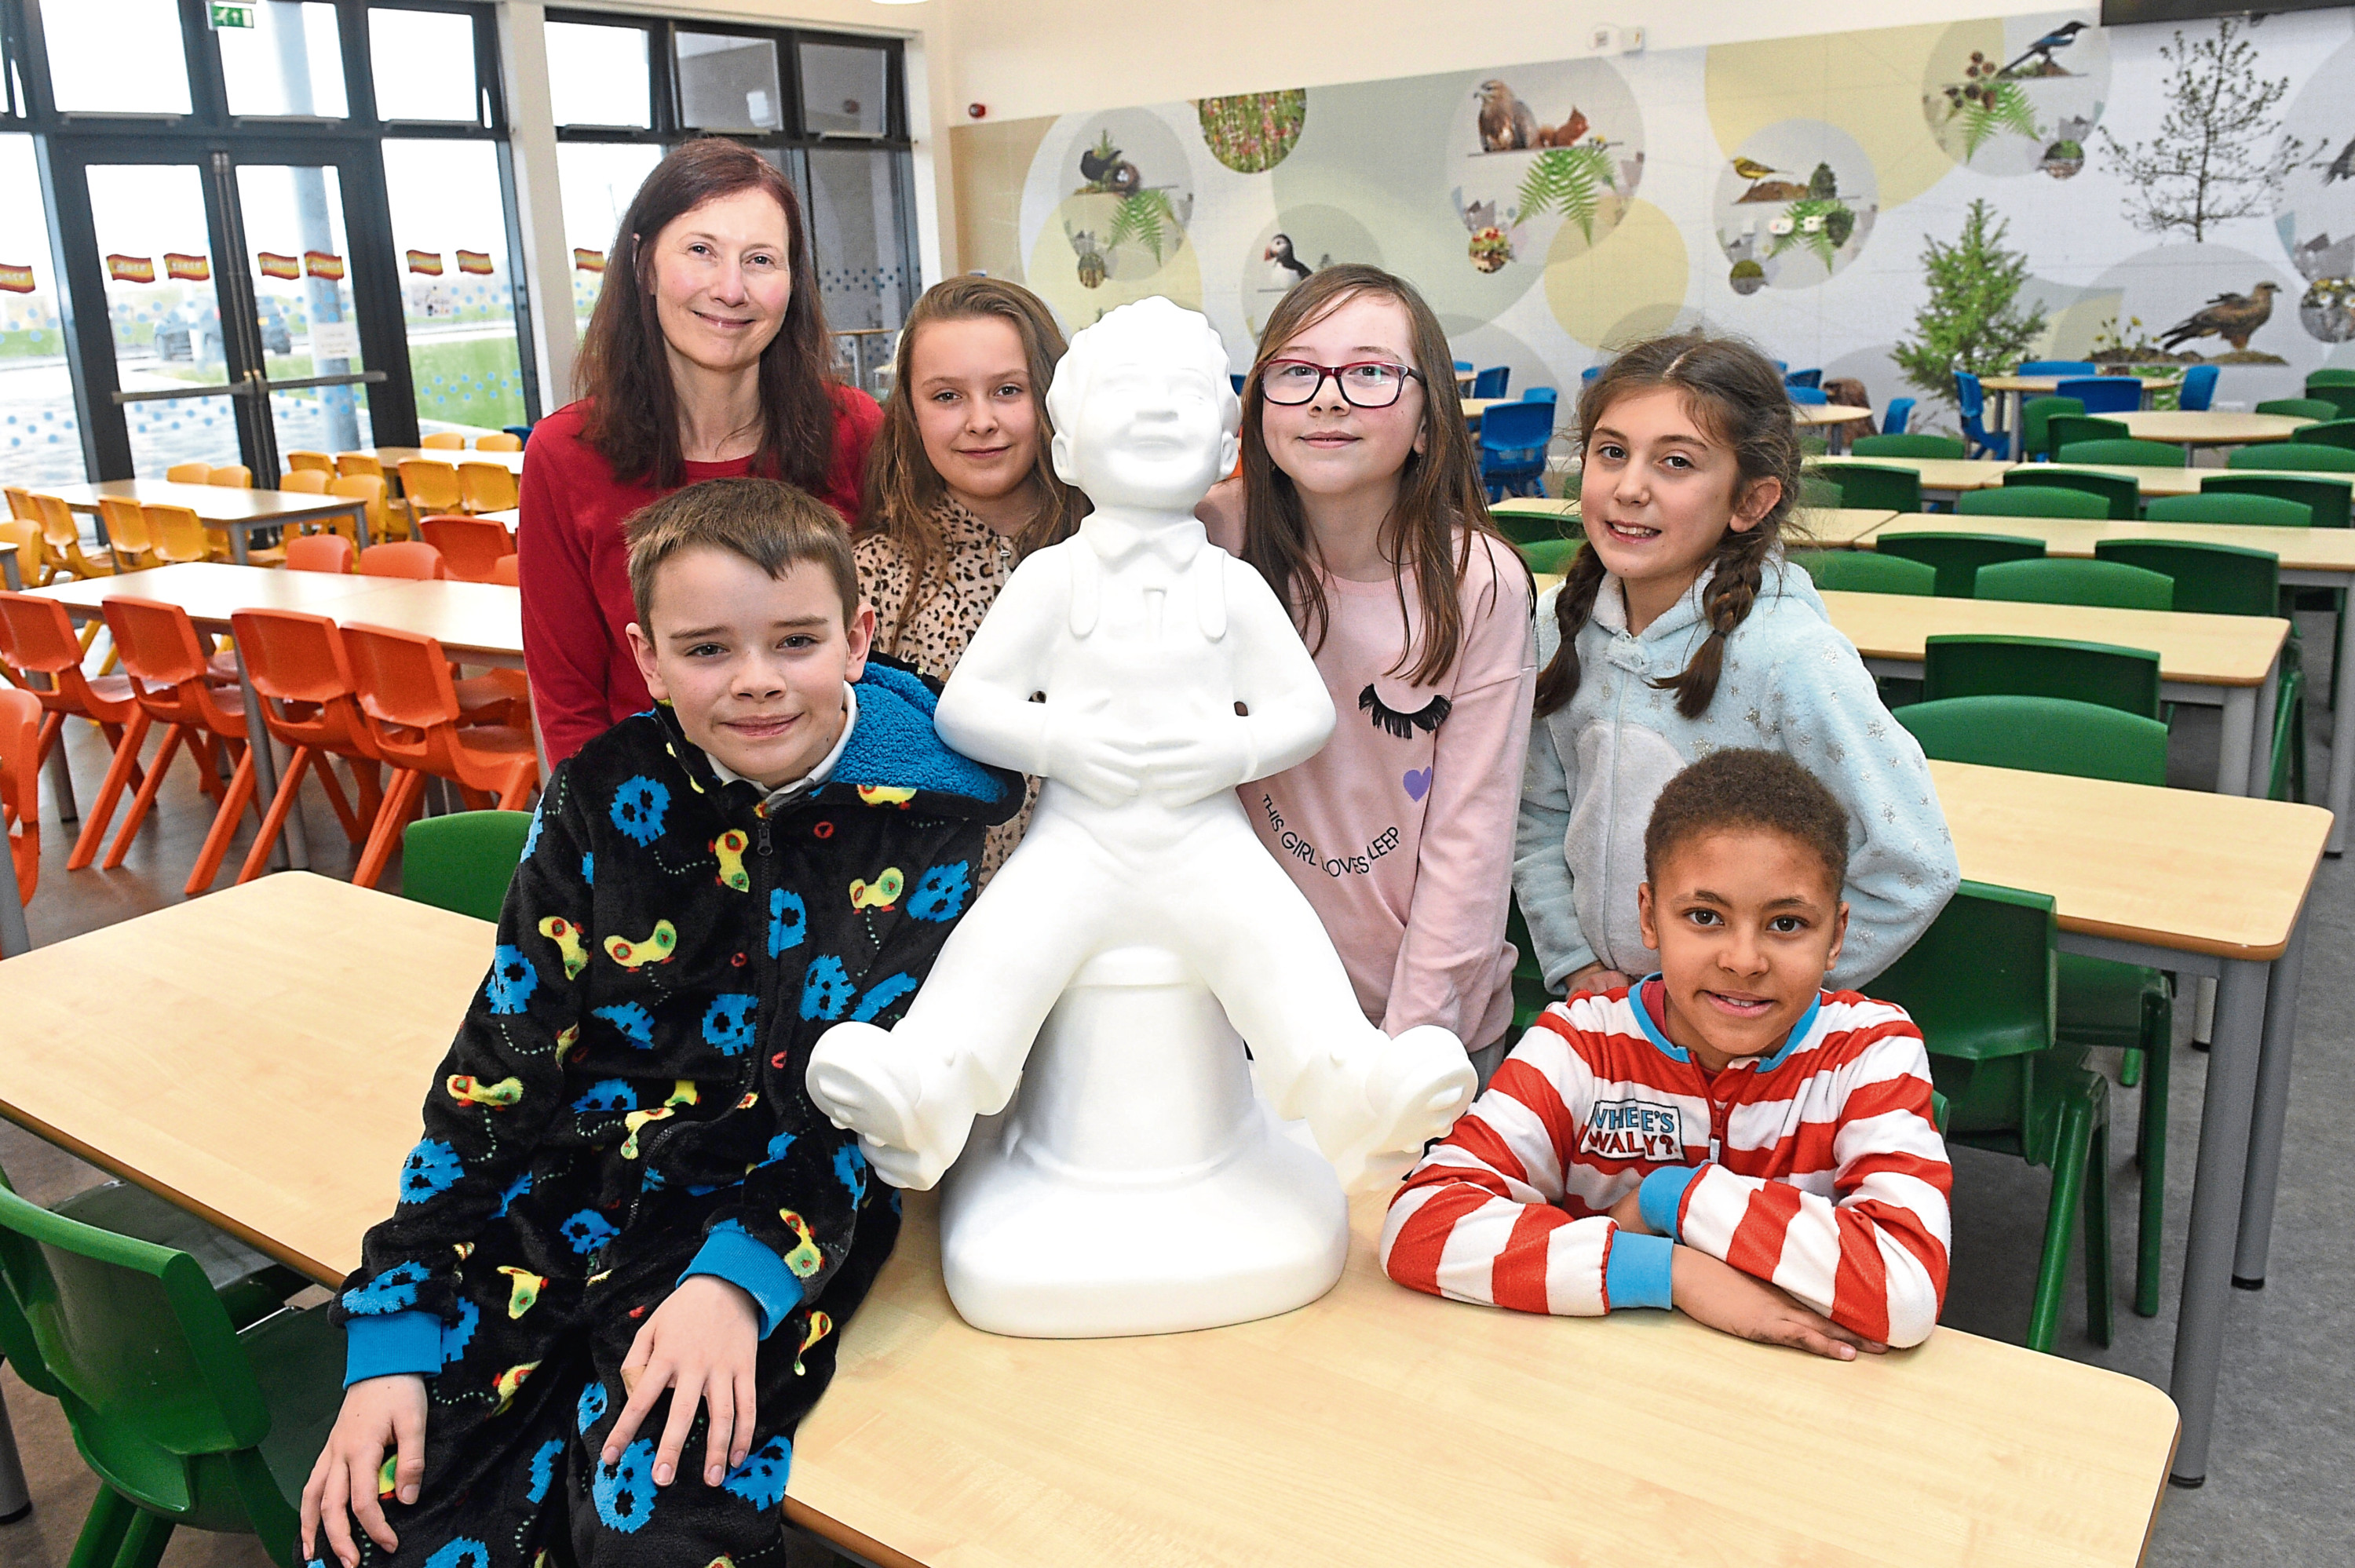 Teacher Fiona Lindsay with, from left, Luke Humphreys, Georgia Roberts, Emily Thomson, Lillian Morrison and Reuben Doran, along with the miniature Oor Wullie sculpture which is to be decorated